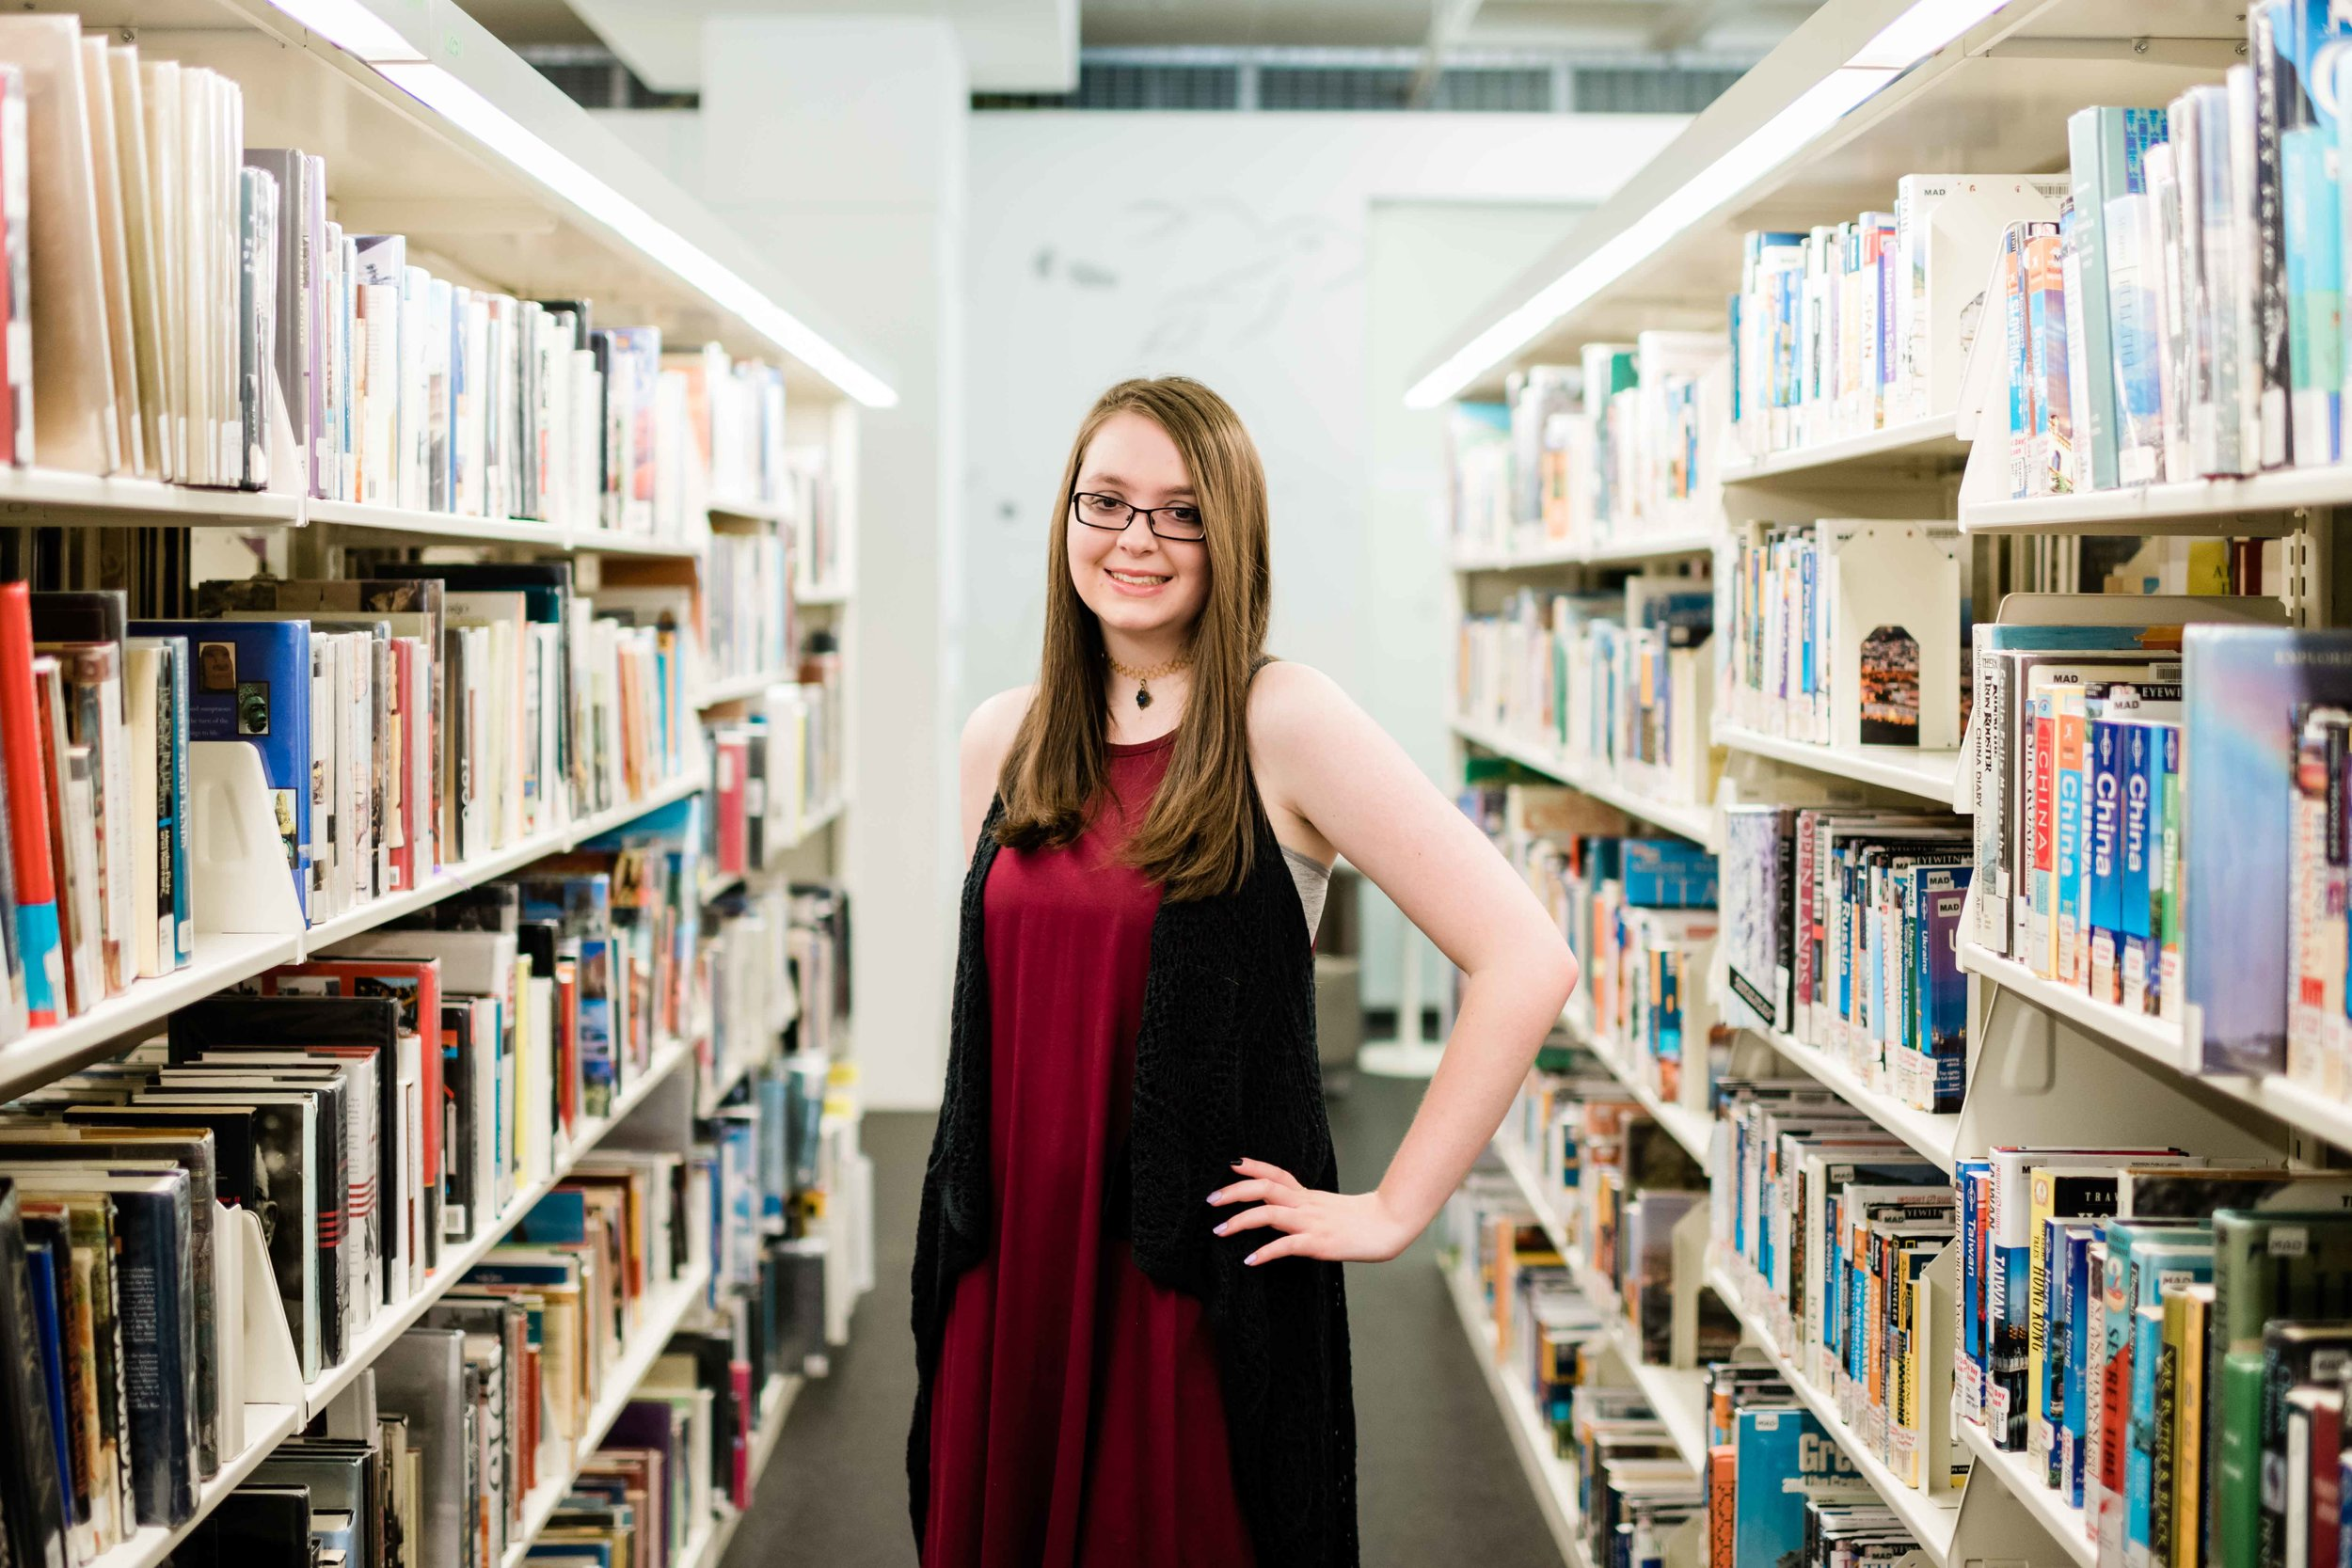 High school senior posing in the stacks at Madison Public Library in downtown Madison, Wisconsin